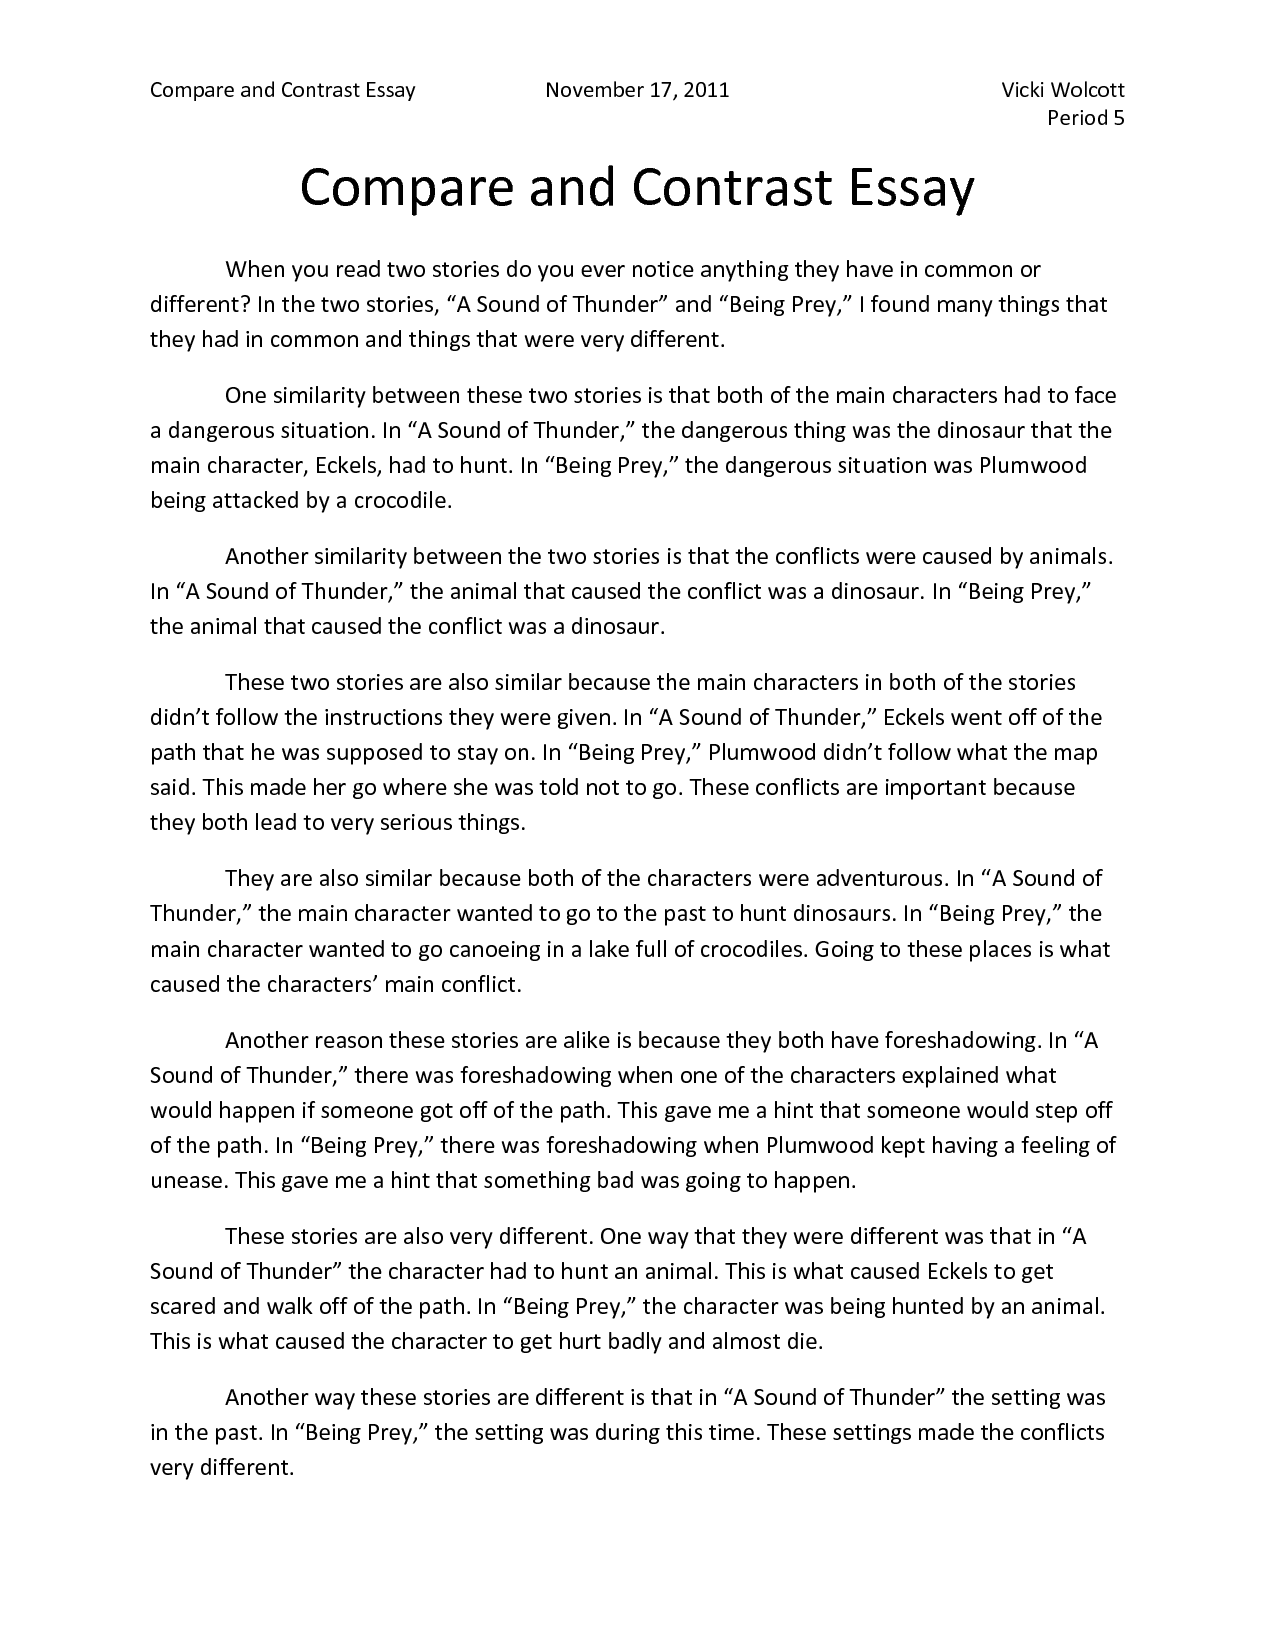 004 Essay Example Compare And Contrast Gallery Template Drawing Art Throughout College Examples Introduction Question Scholarship Free Edexcel Conclusion Frightening Topics For Students Rubric 4th Grade Ideas 7th Full